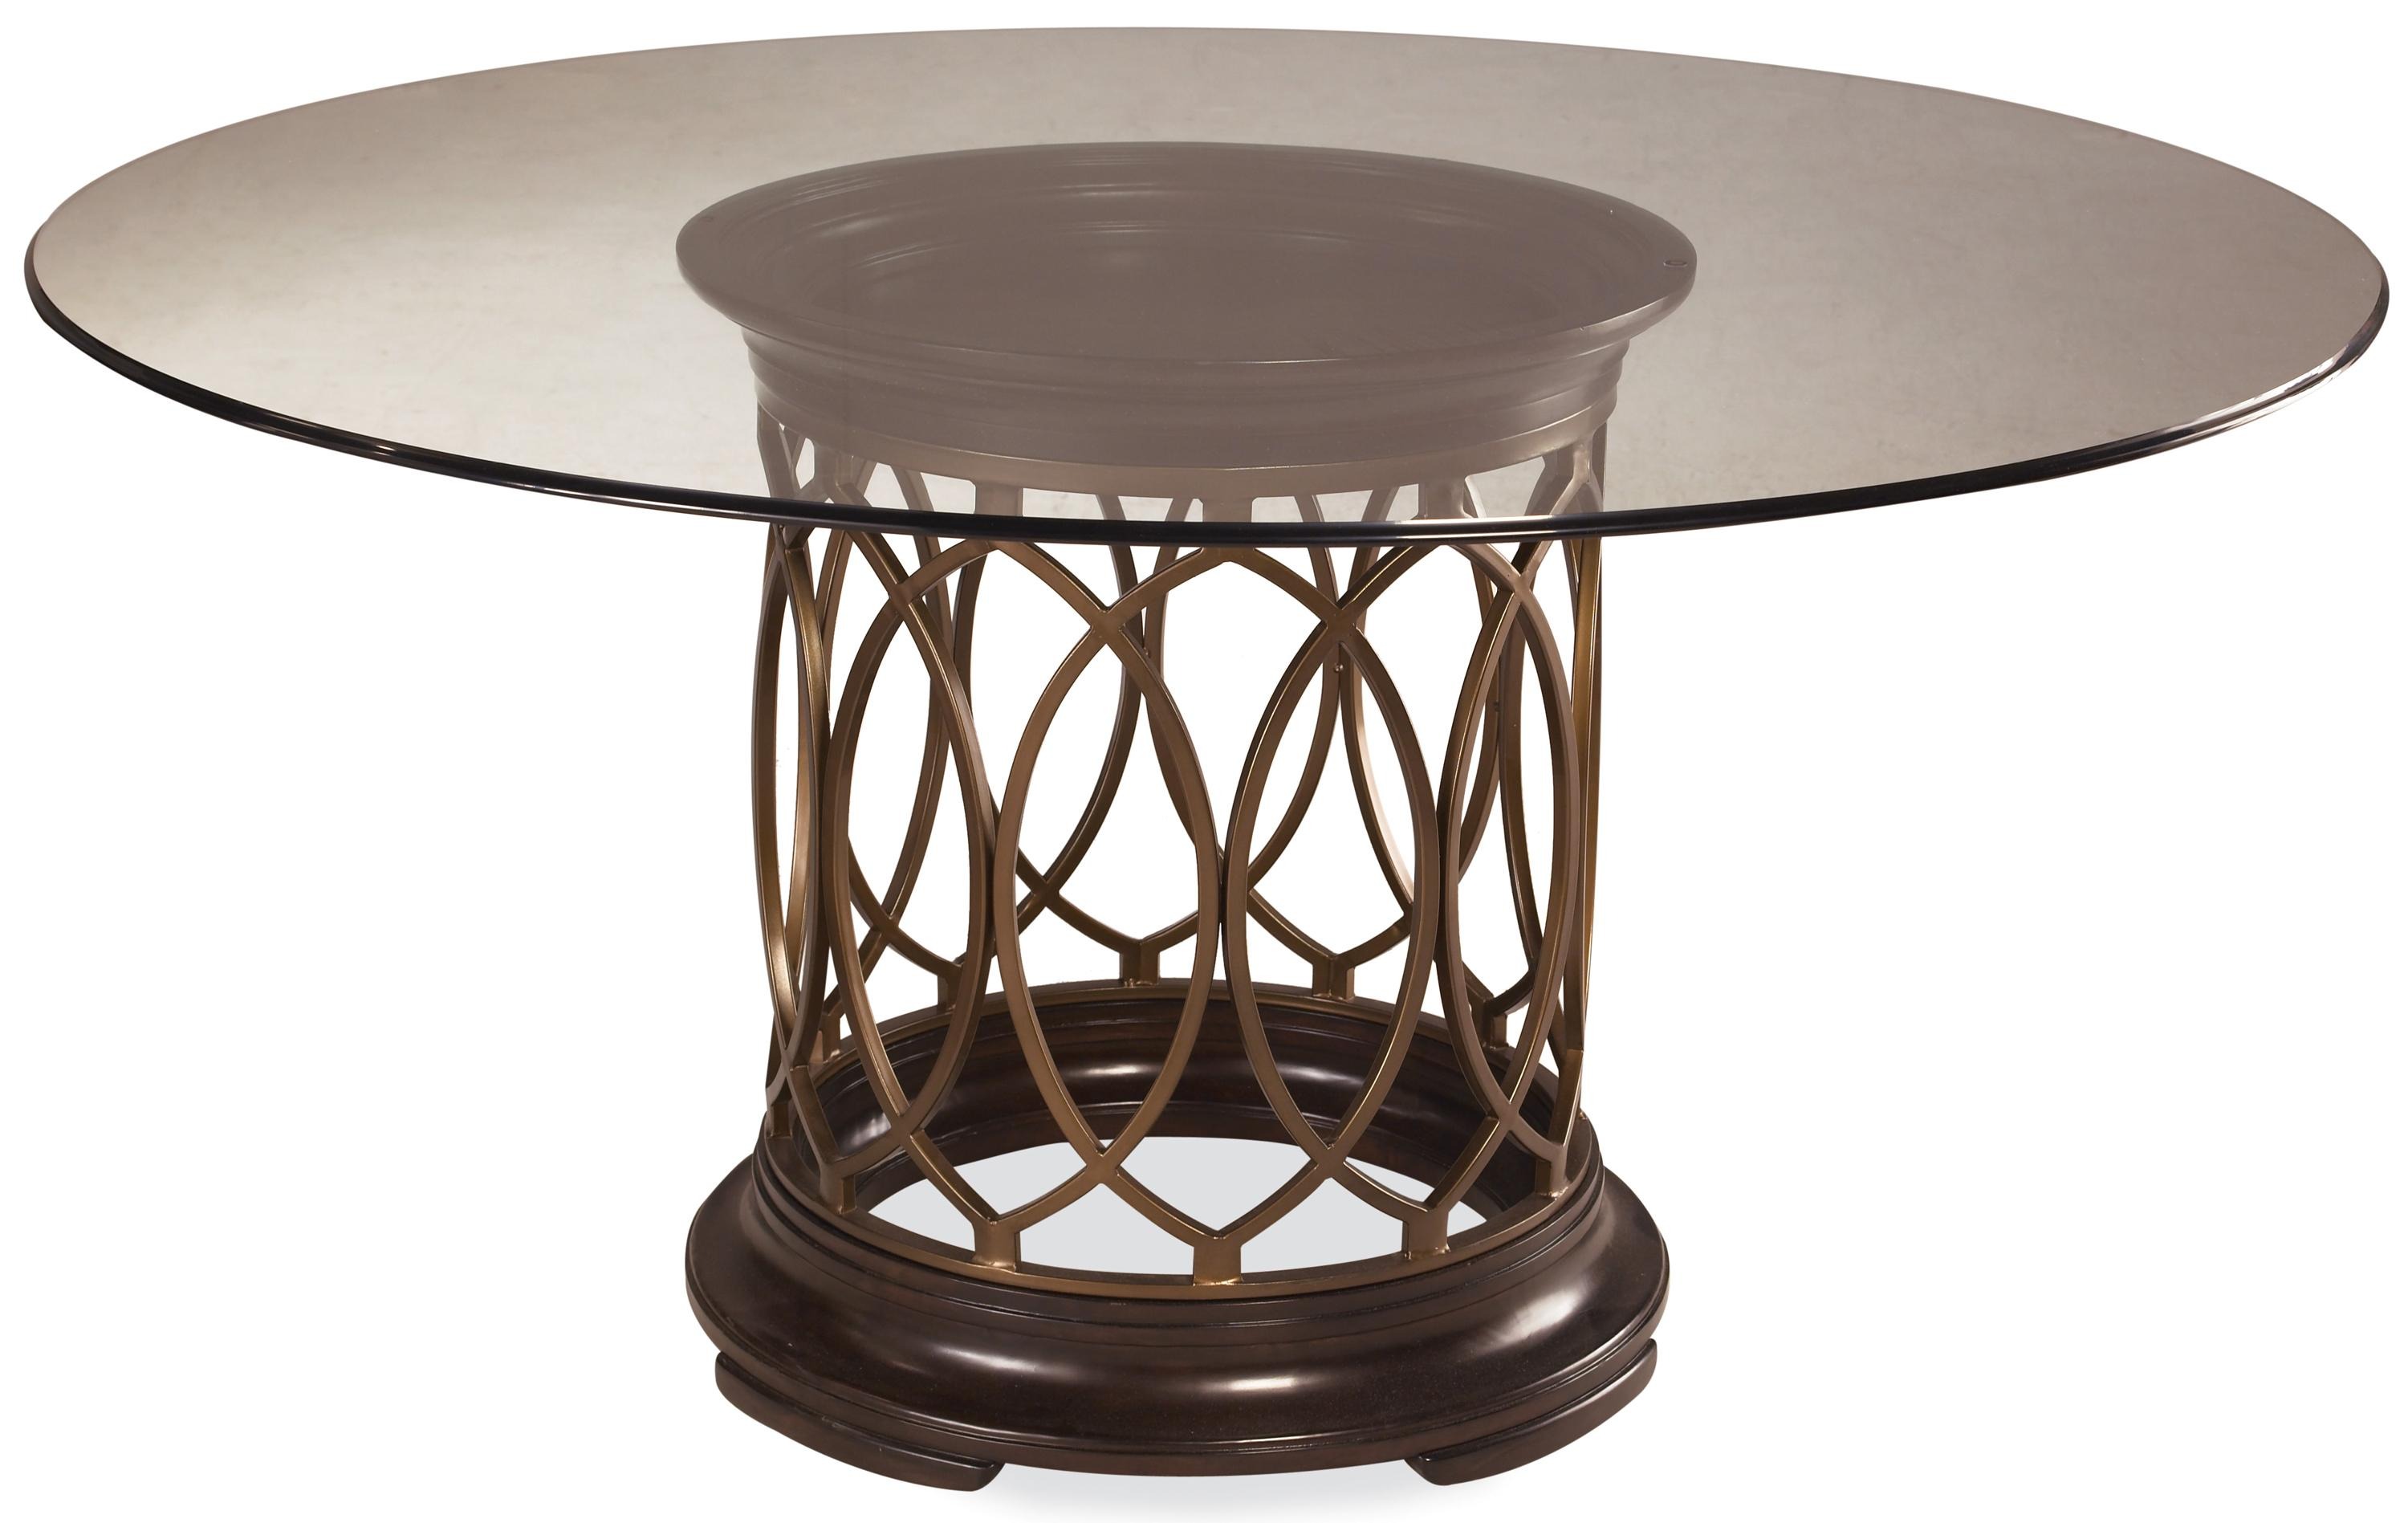 A r t furniture inc intrigue round glass top dining table with upholstered arm side chairs Glass furniture tops